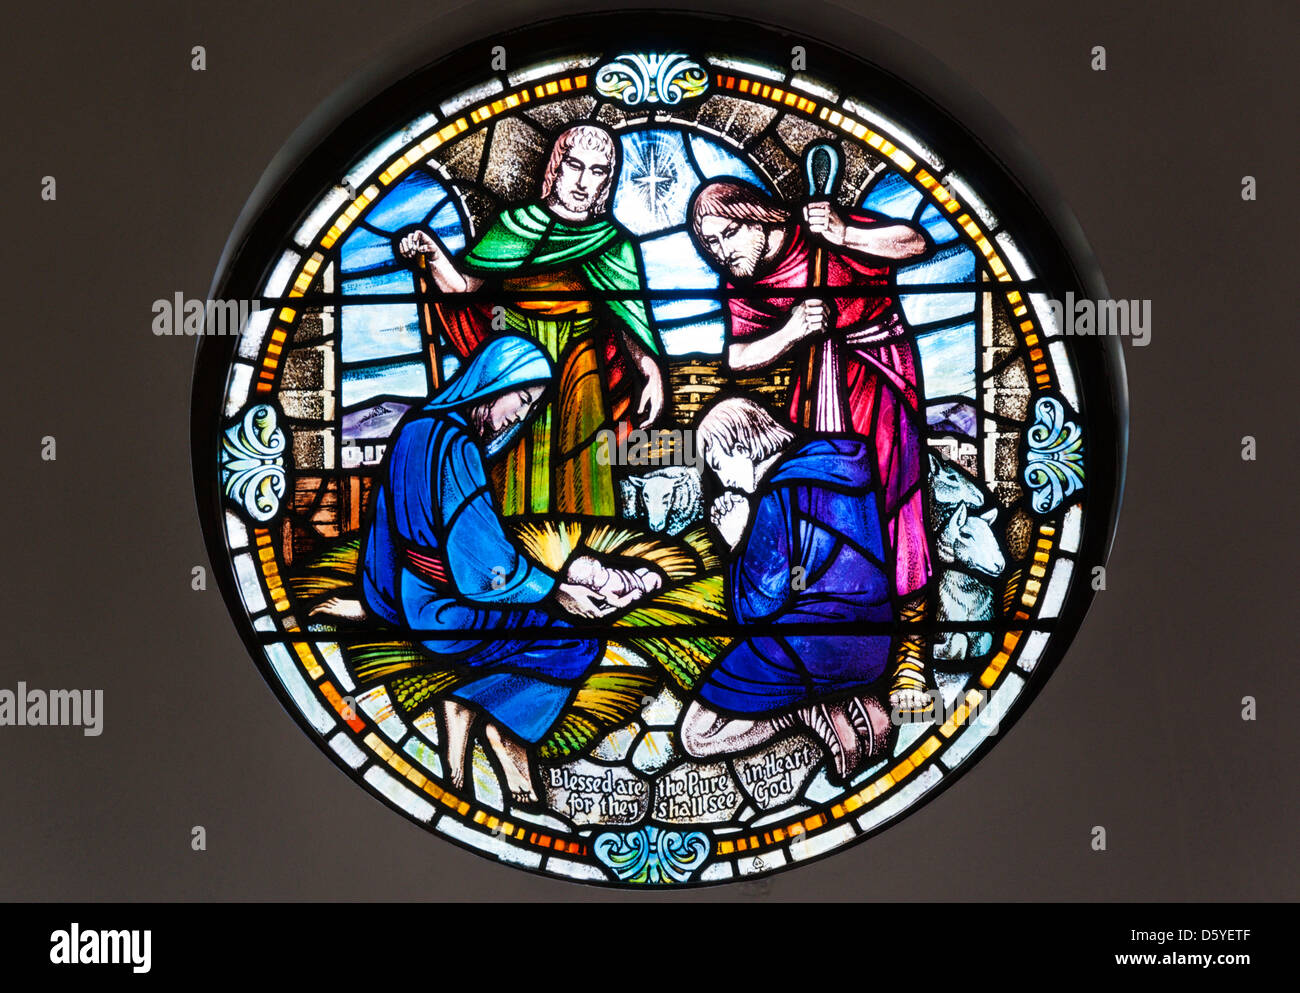 Chancel window showing the Adoration of the Shepherds in St Peter's church, Stornoway. - Stock Image